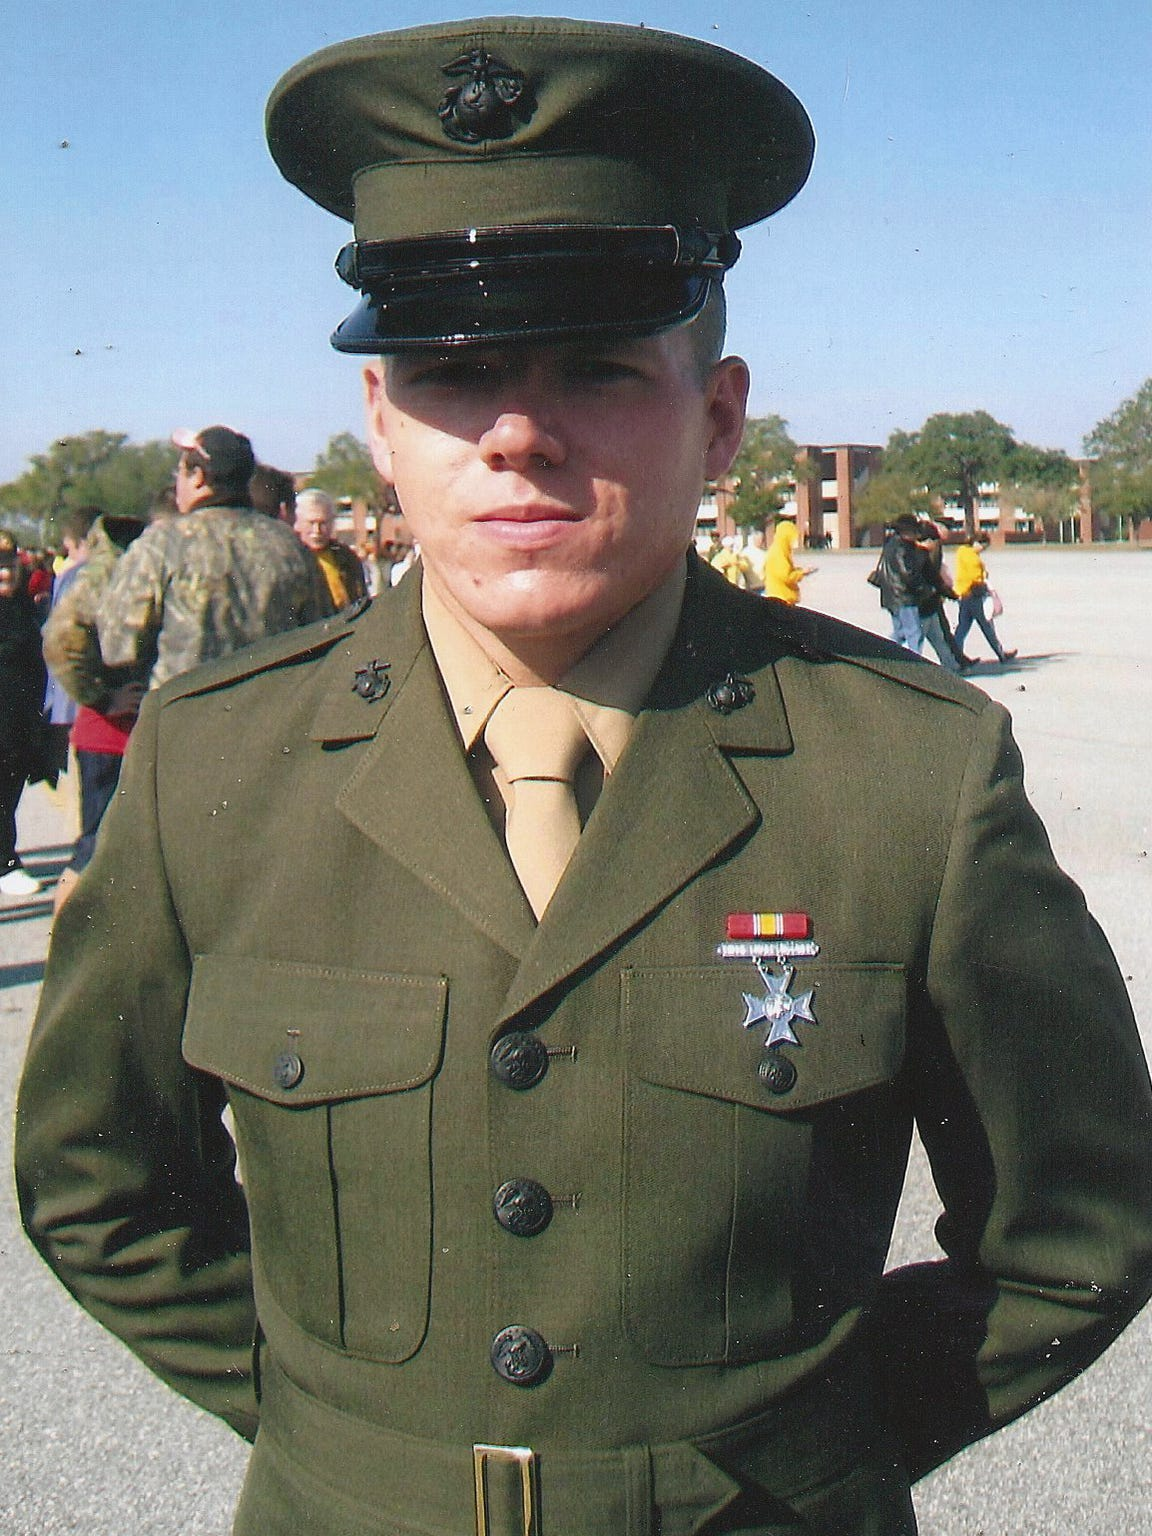 Marine veteran Jacob Faulkner pictured in uniform.